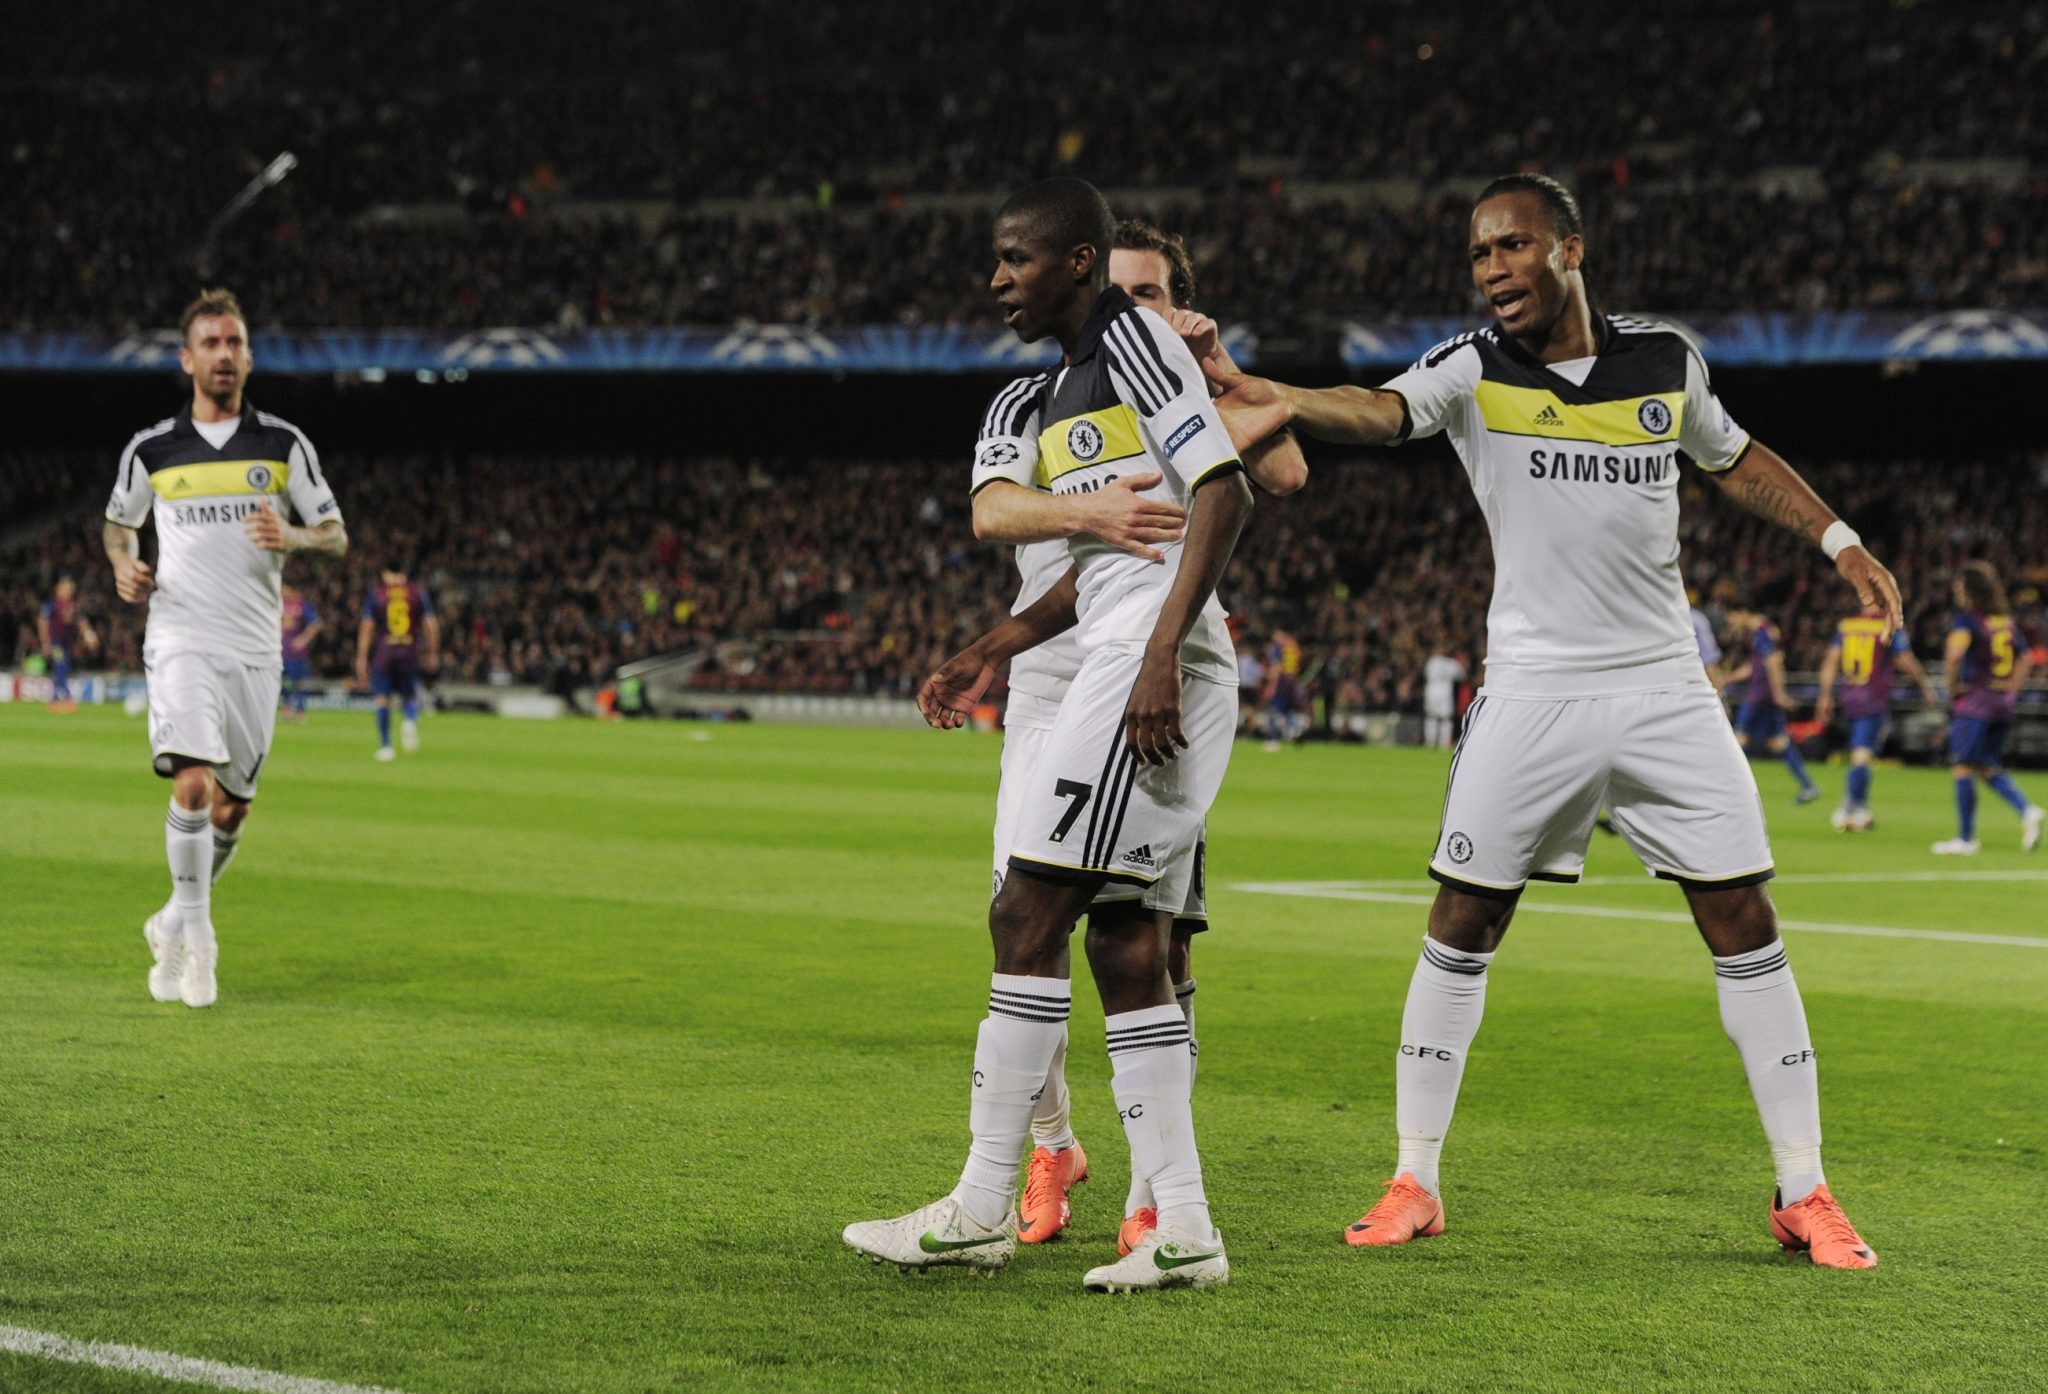 Ramires looks back at memories from road to Champions League triumph